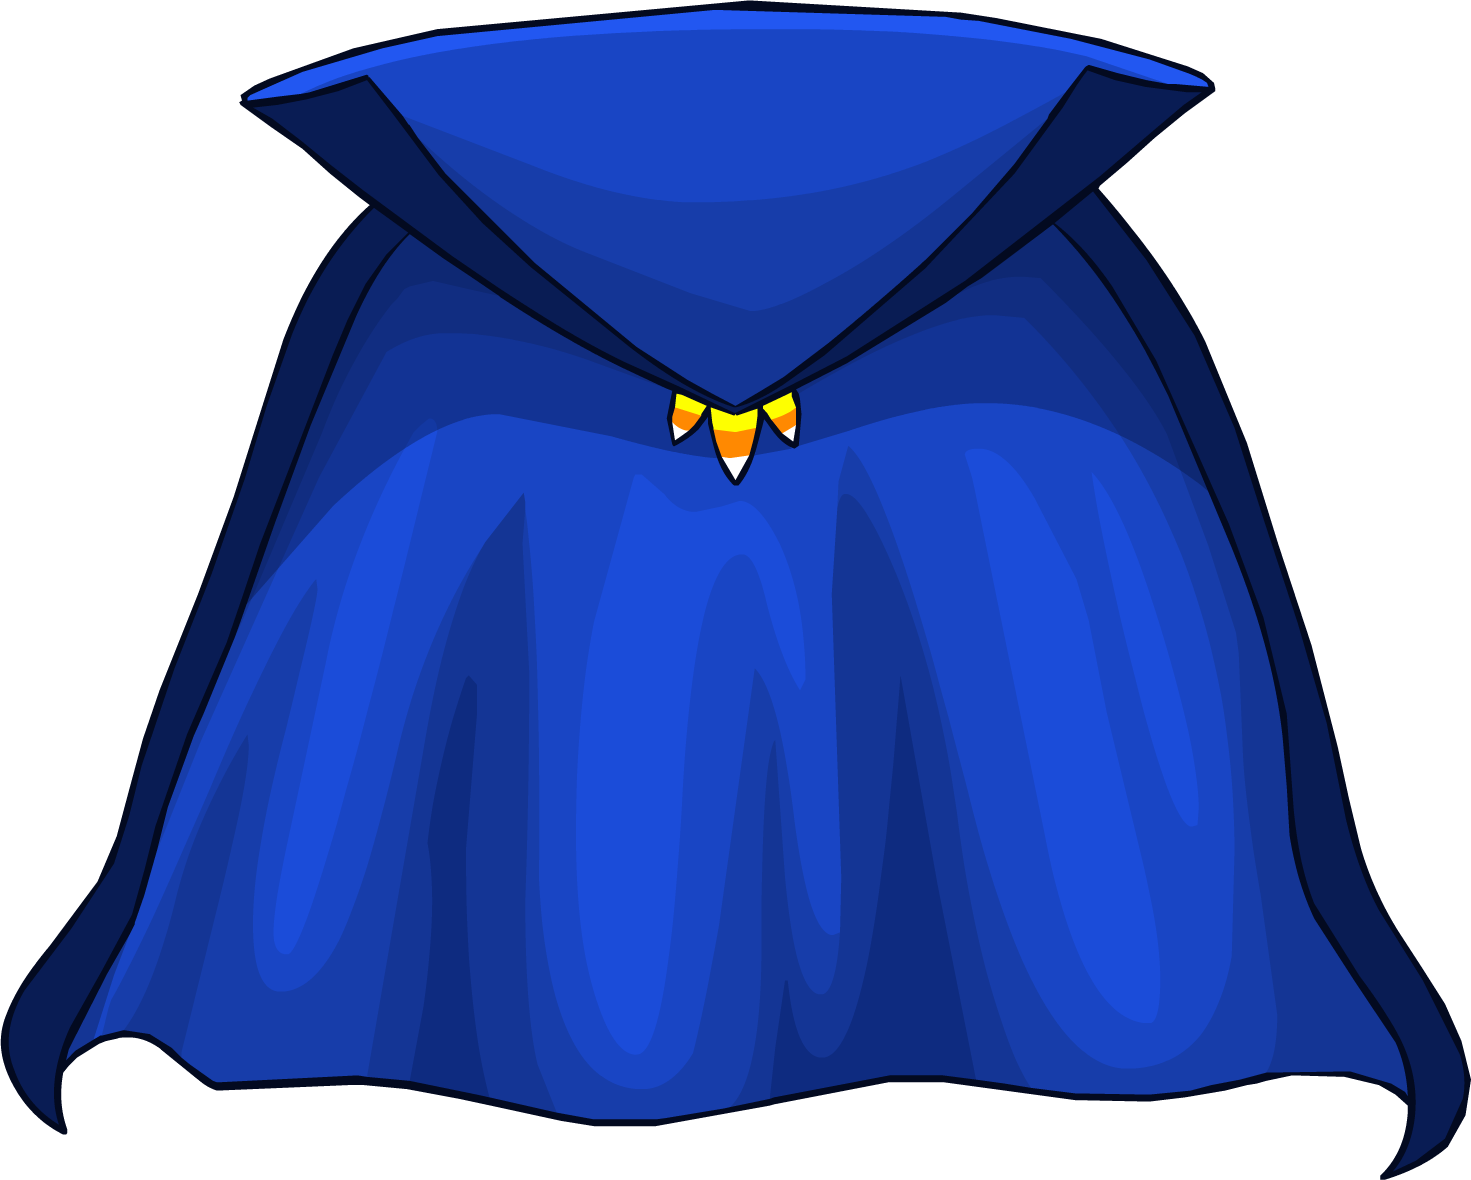 clipart royalty free download Vampir clipart vampire cape. Club penguin wiki fandom